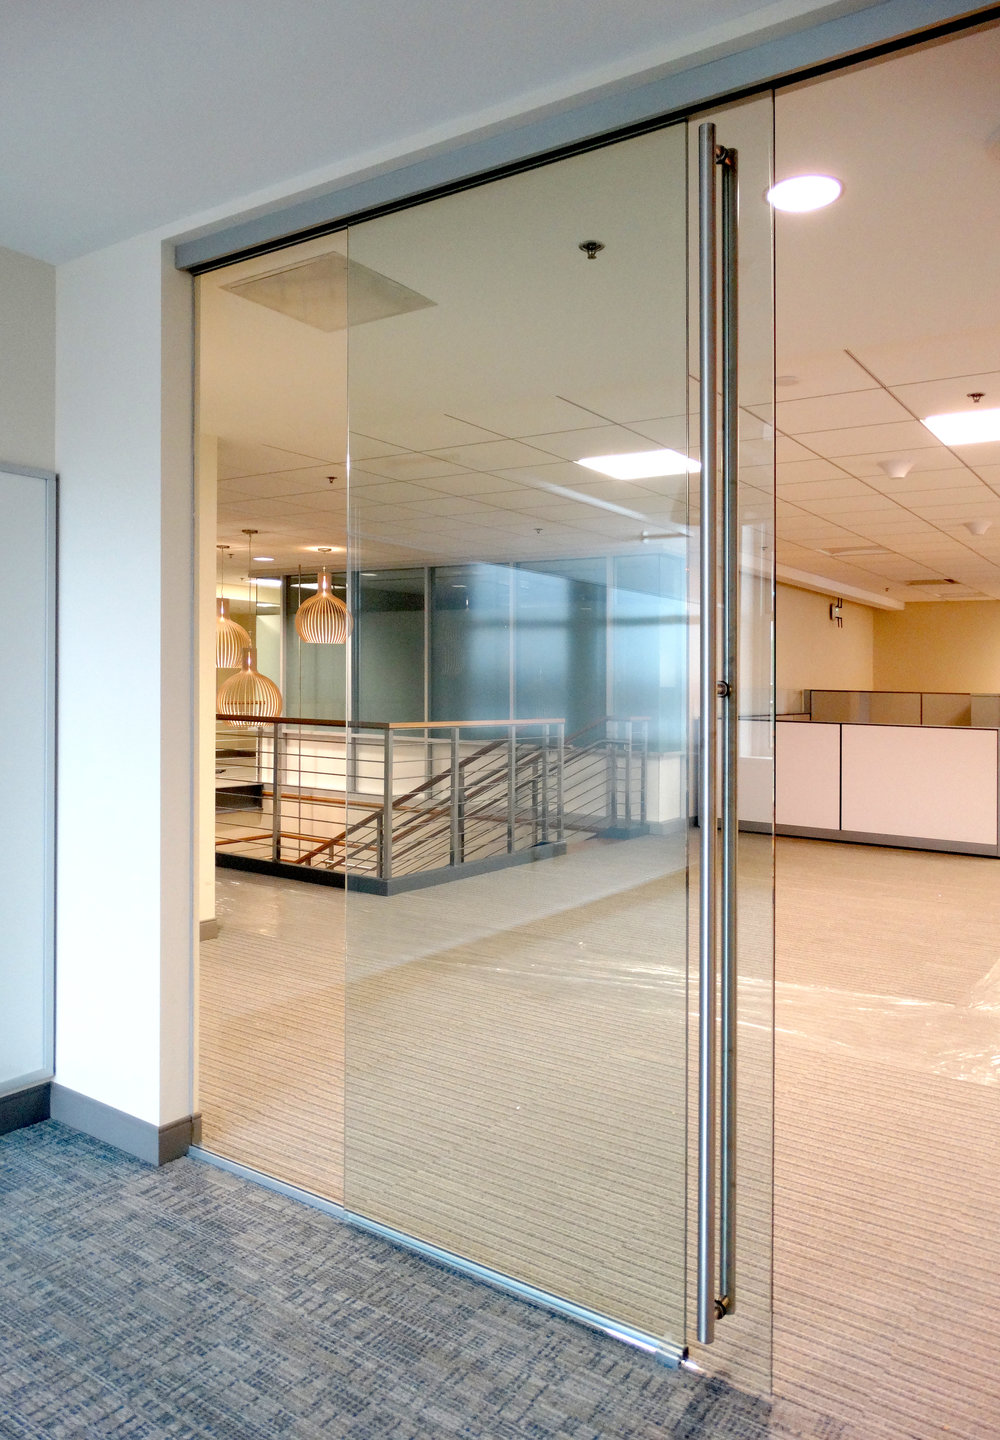 Encase Frameless Glass Sliding Door Office Wall - Spaceworks AI.jpg